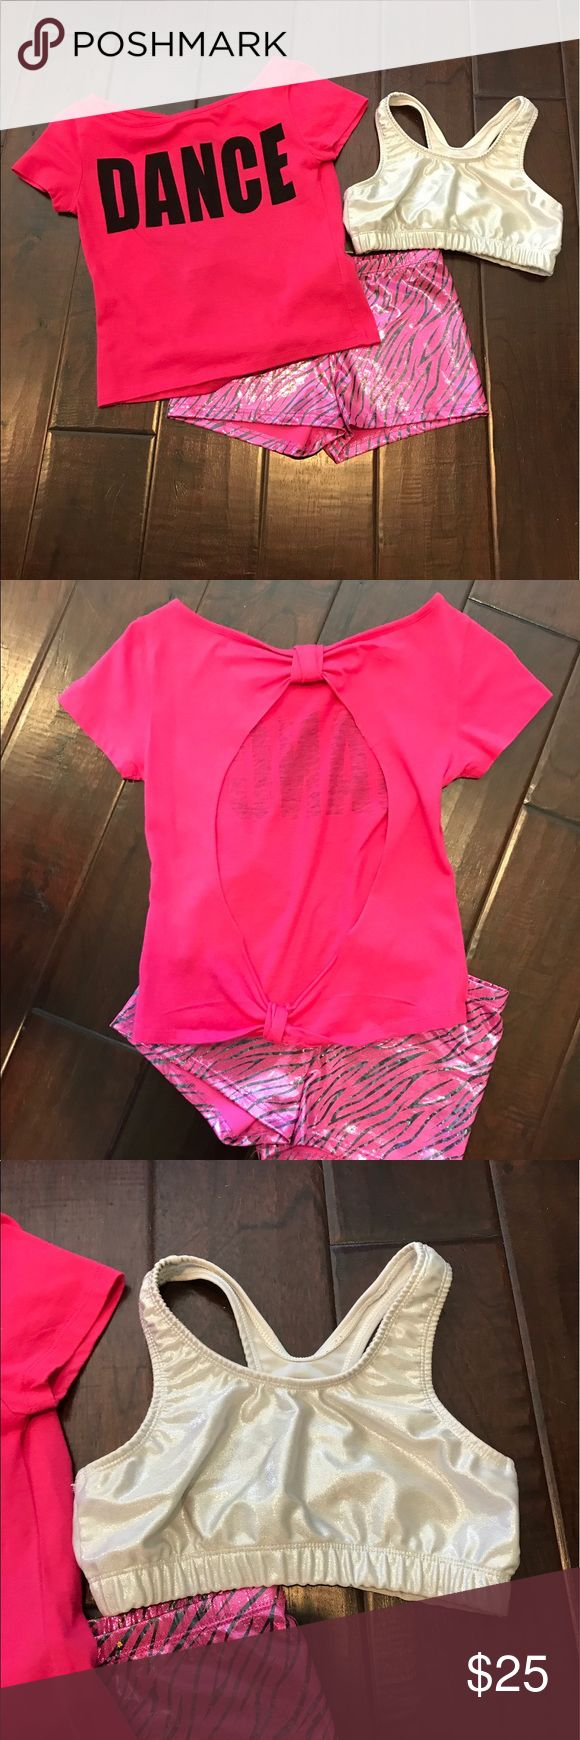 """Girl's DANCE bundle size L 3 pc girl's dance bundle. Silver sports bra and """"Dance"""" top Size youth large. Tumble shorts size 12-14. Can break the bundle if requested. All in excellent condition. Body Wrappers Costumes Dance"""